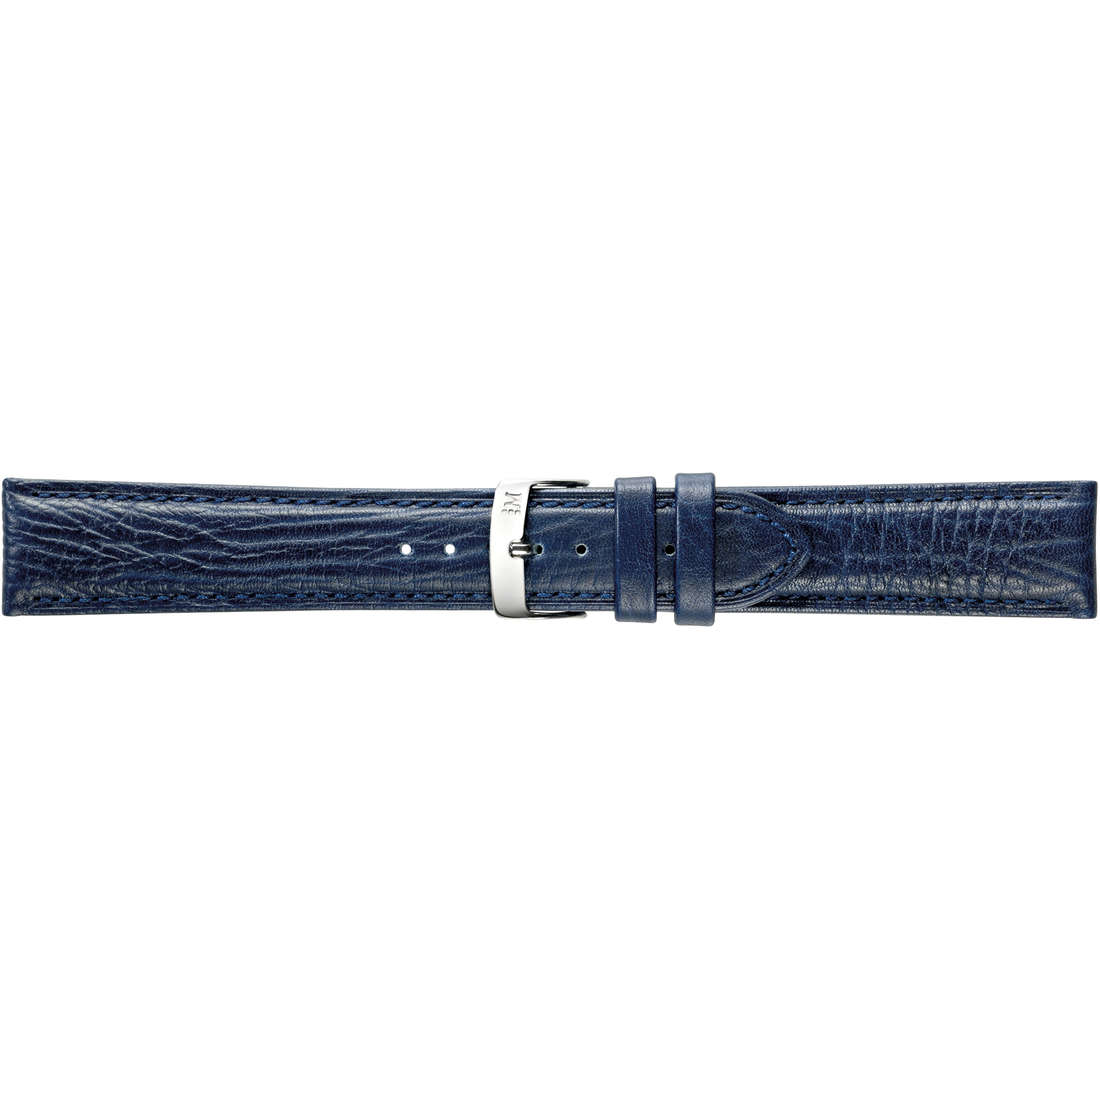 watch watch bands watch straps man Morellato Linea Sport A01X4335713062CR20